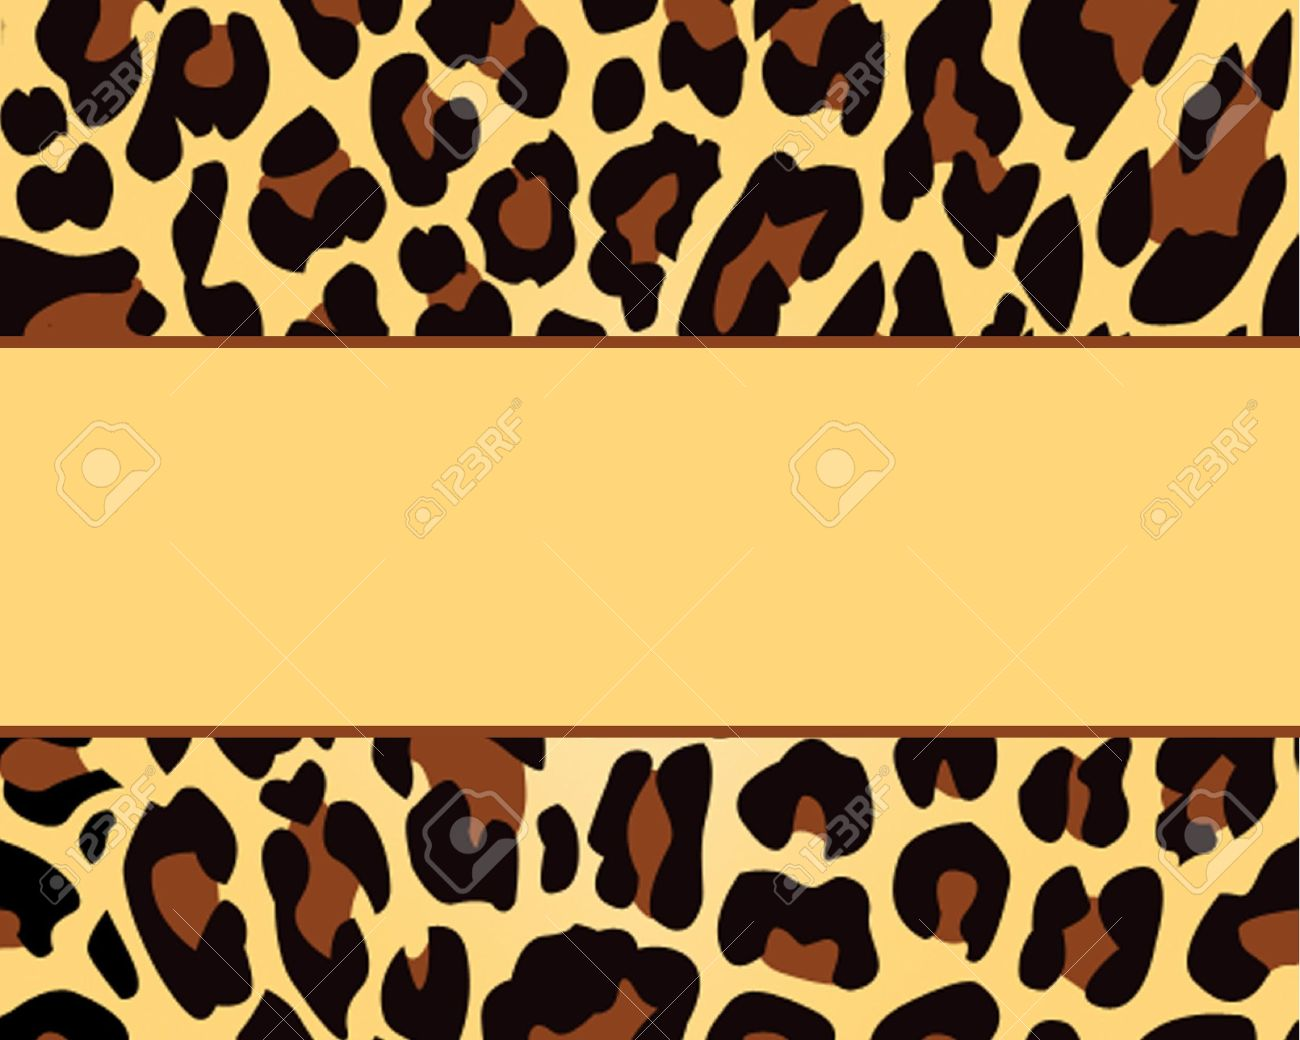 Doc900816 leopard print birthday cards animal print leopard print background template photo picture and royalty leopard print birthday cards toneelgroepblik Gallery